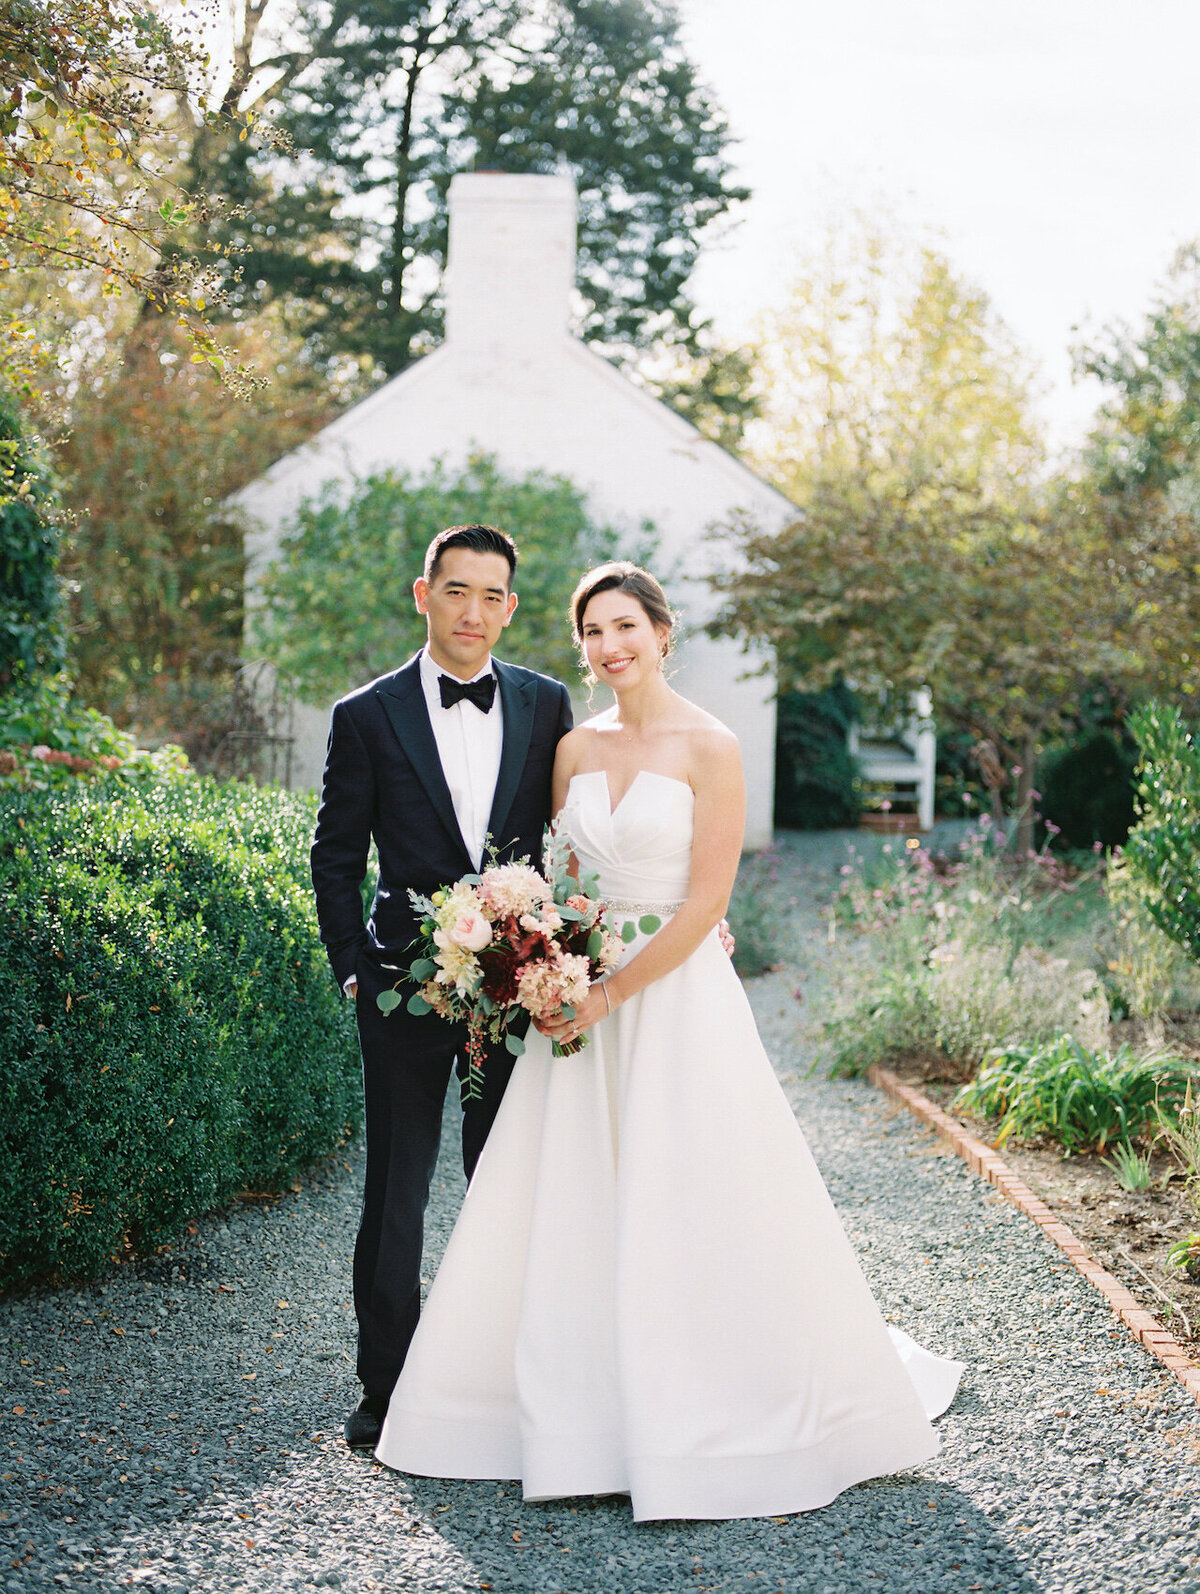 Outdoor Wedding Portraits Light and Airy Photographer Robert Aveau for © Bonnie Sen Photography